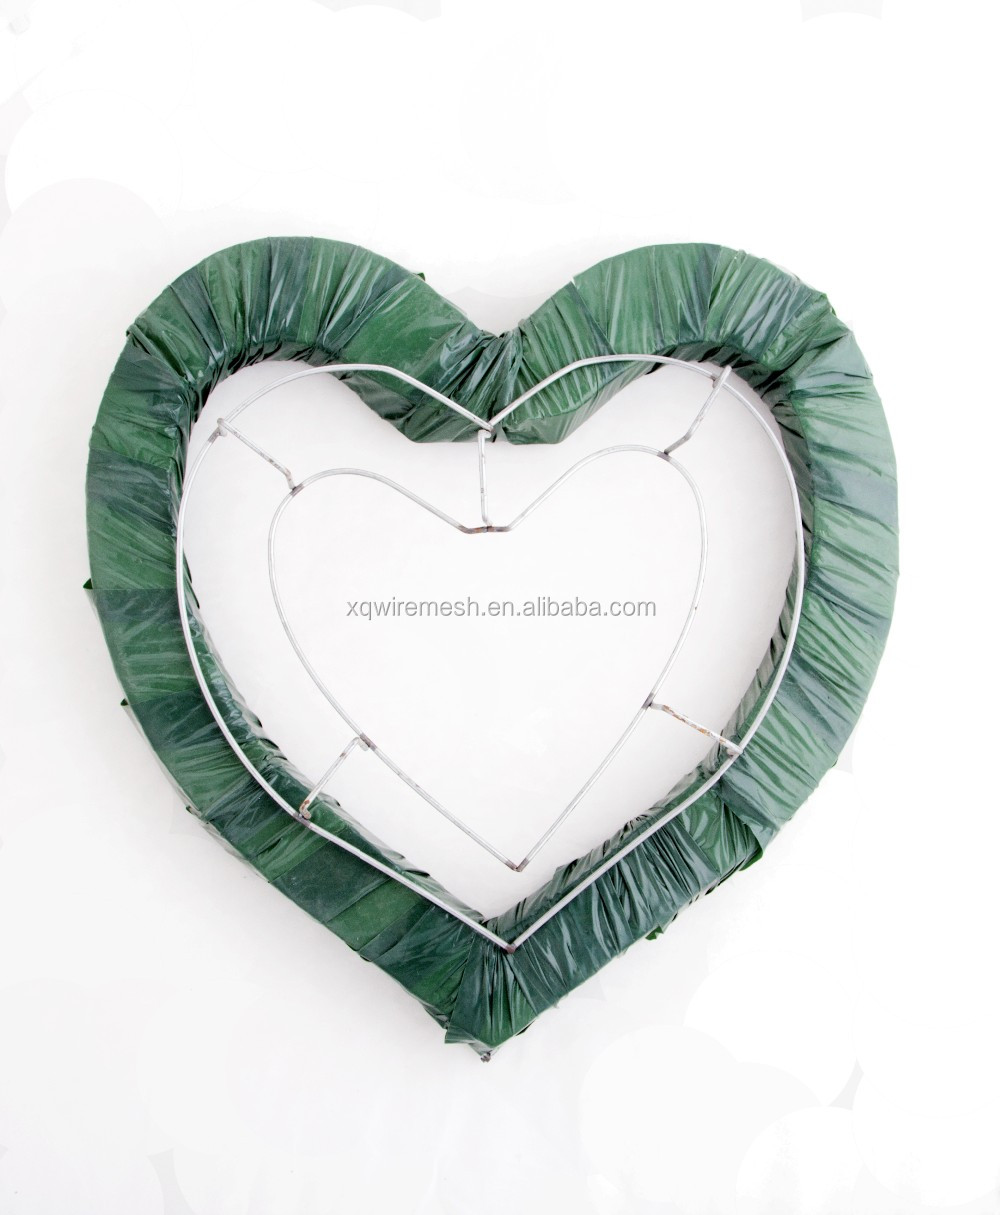 hot sell double ring metal wire wreath